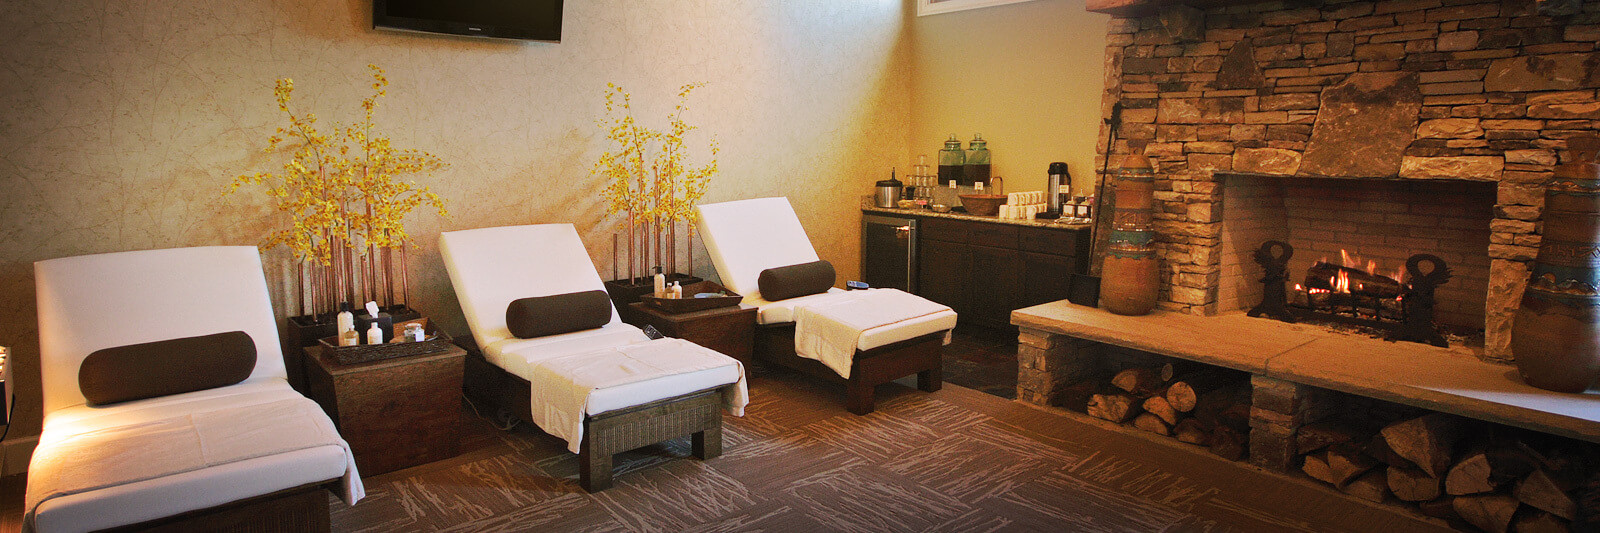 Brasstown Valley Spa 1